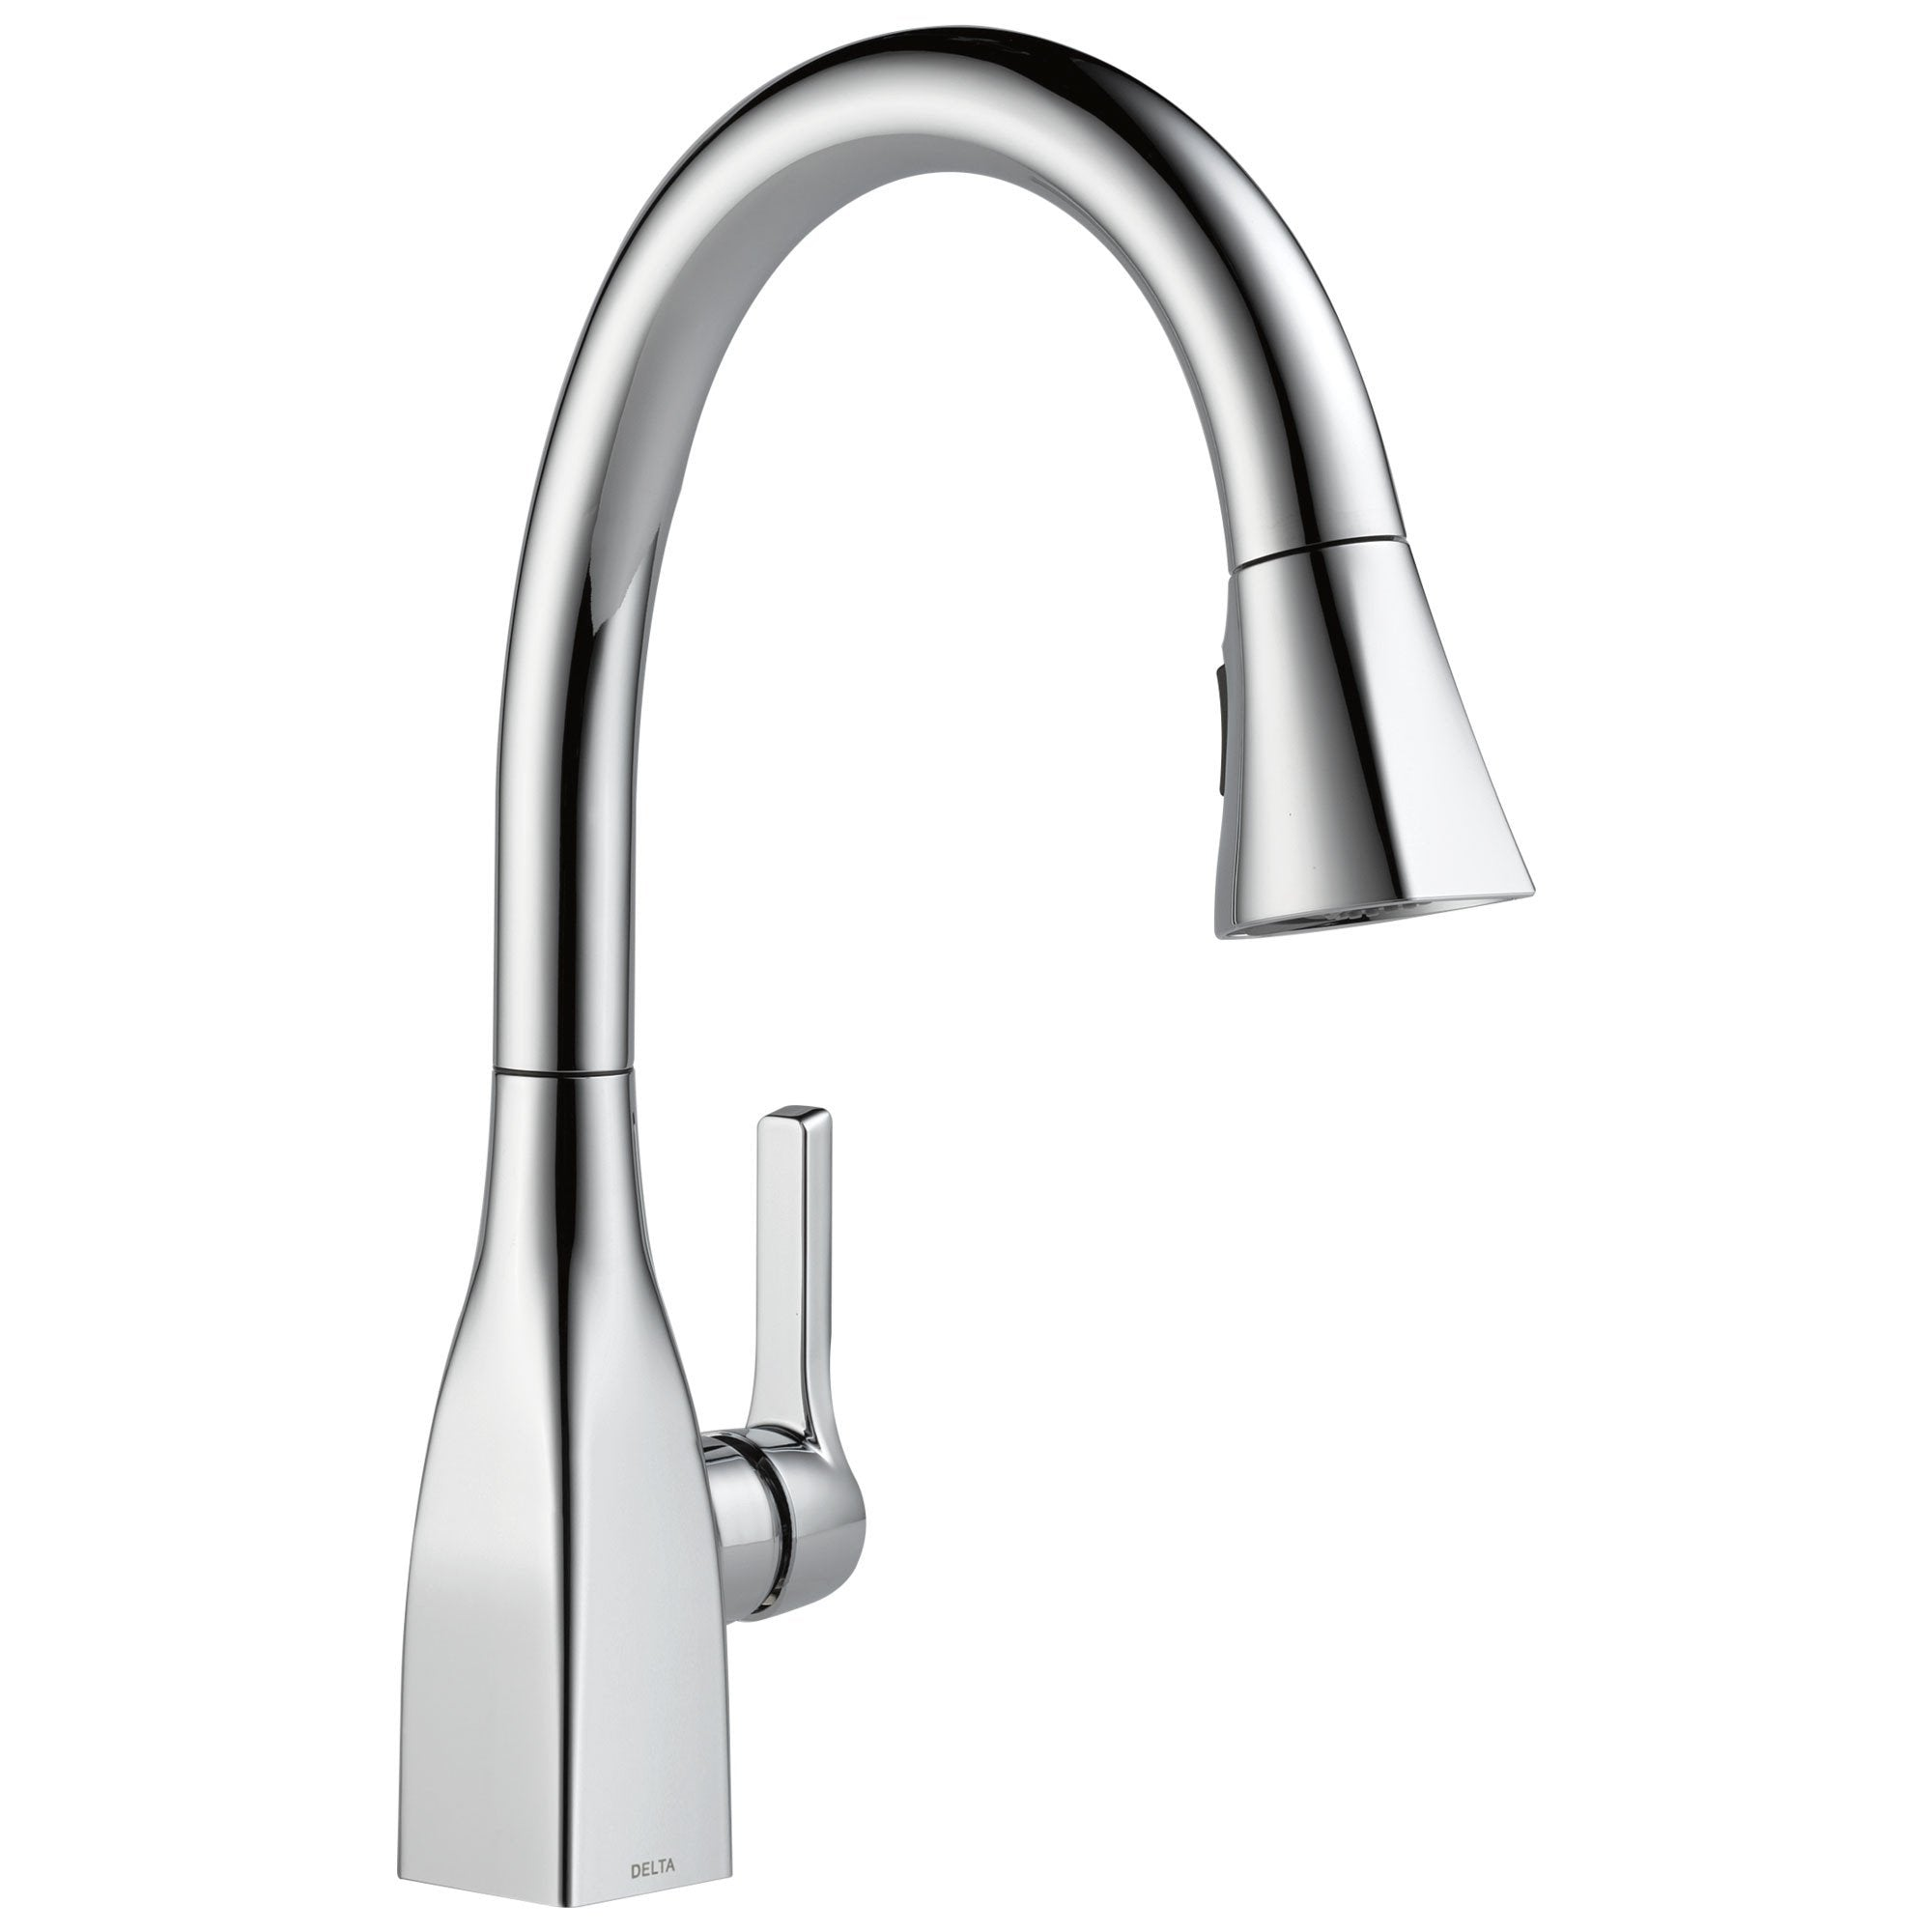 Delta Mateo Collection Chrome Finish Modern Single Lever Handle Pull-Down Kitchen Sink Faucet 726272